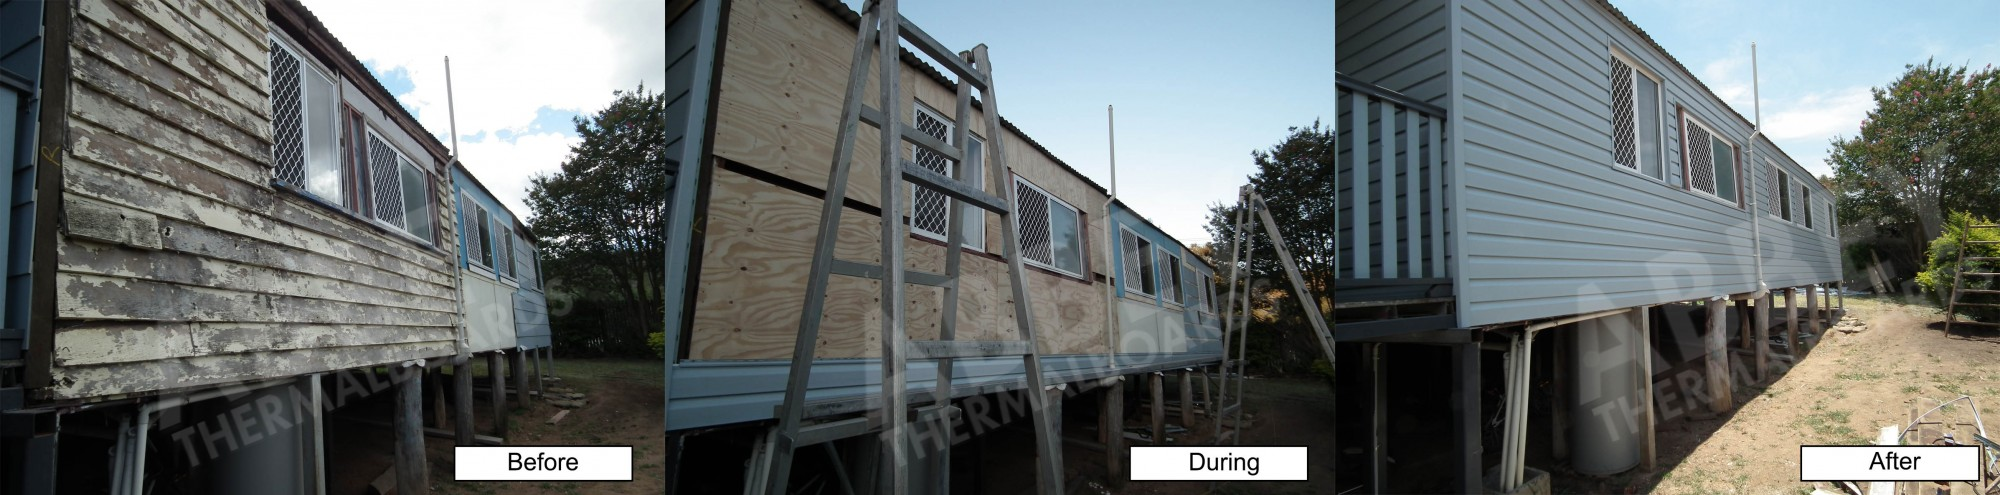 Before, during and after house cladding completed by Abbey Thermalboards.